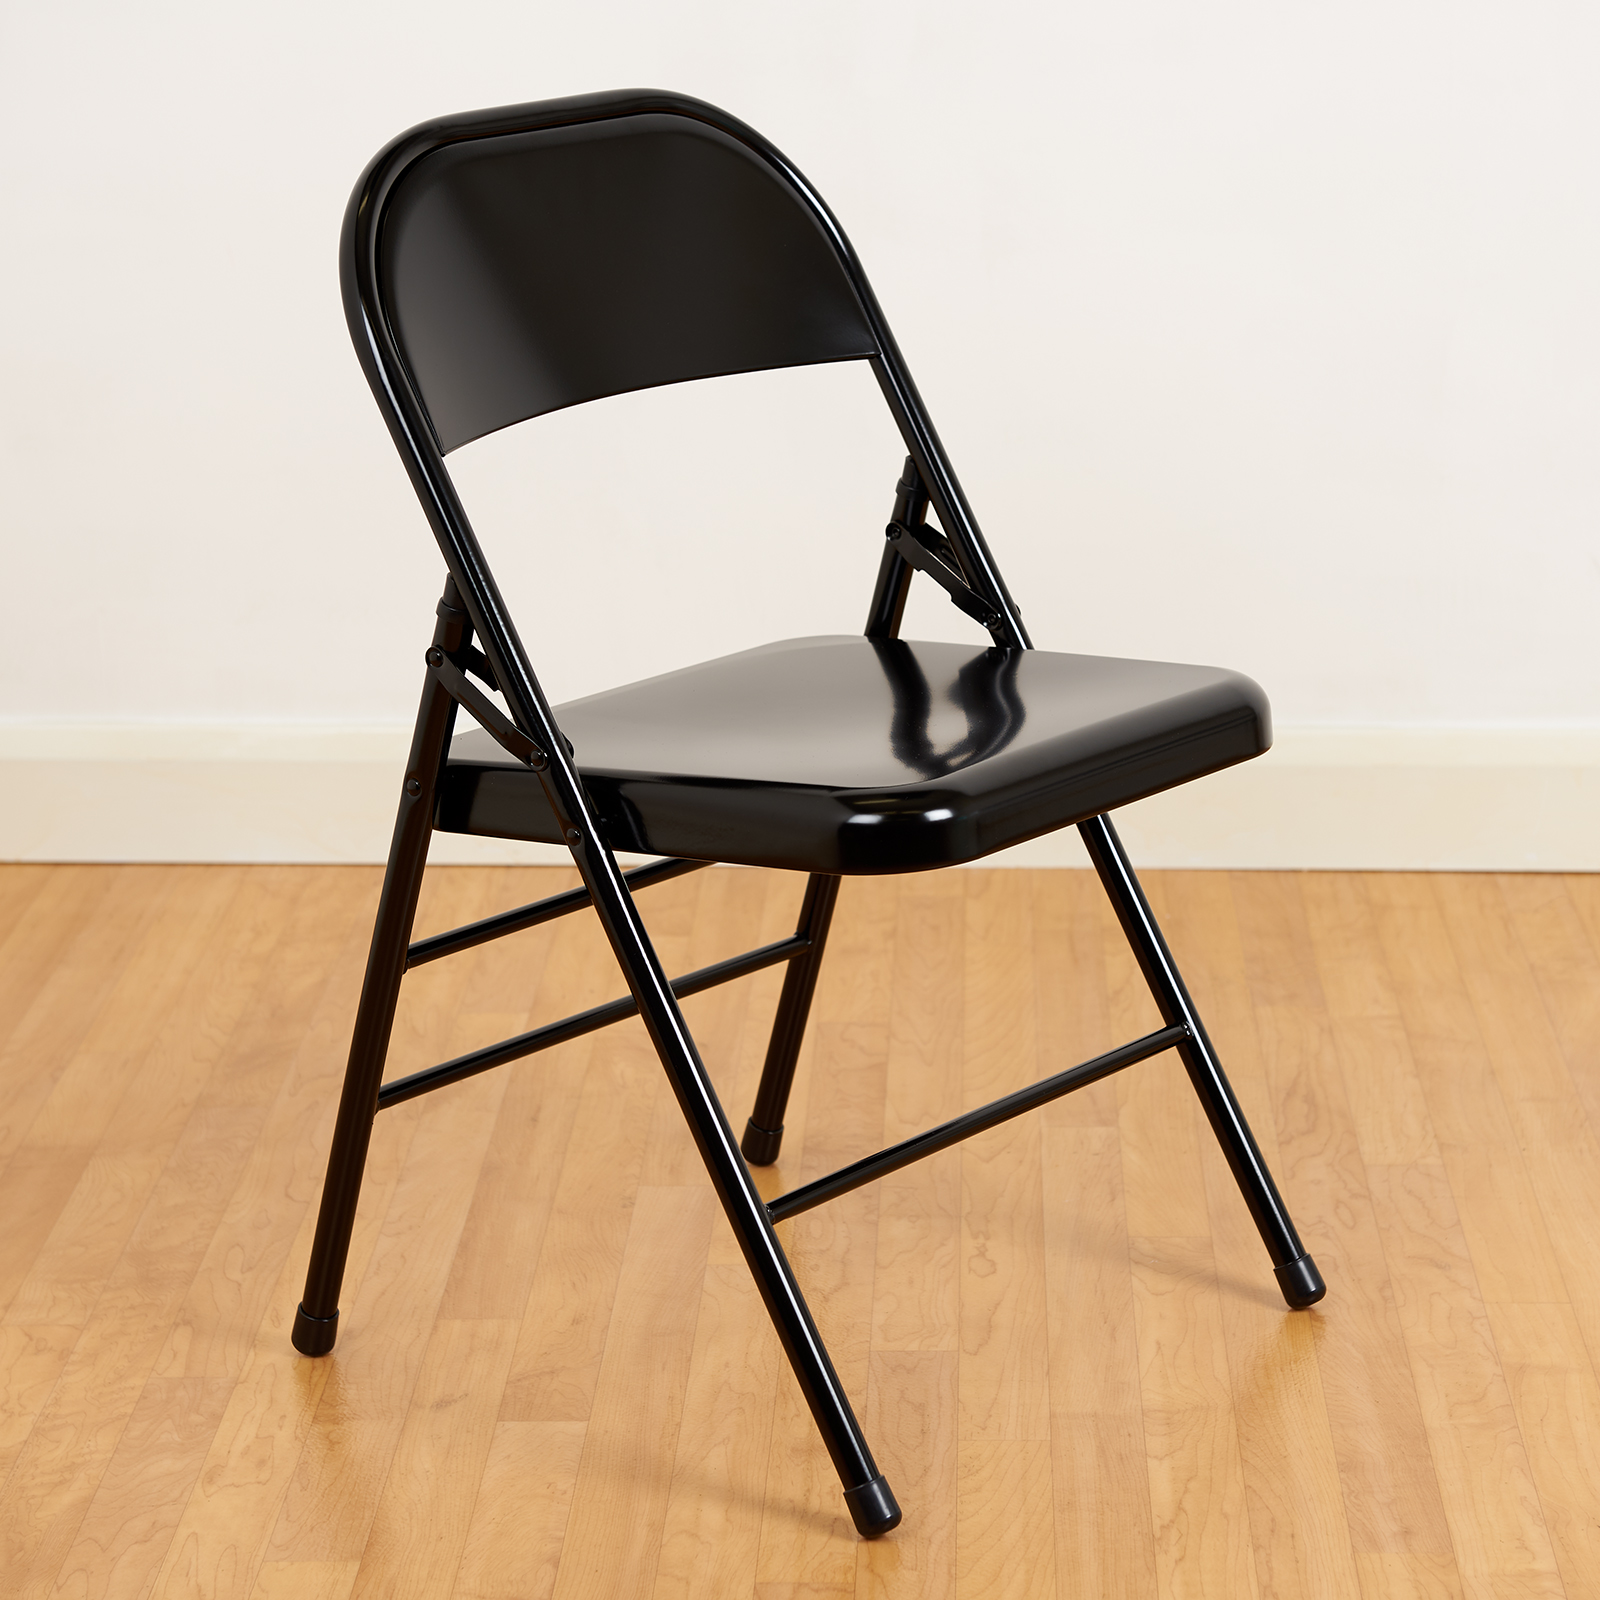 Chairs Home Furniture Diy Black Metal Folding Chairs Pair Set Of 2 Fold Up Design Industrial Office Seat Mekongcounsel Vn